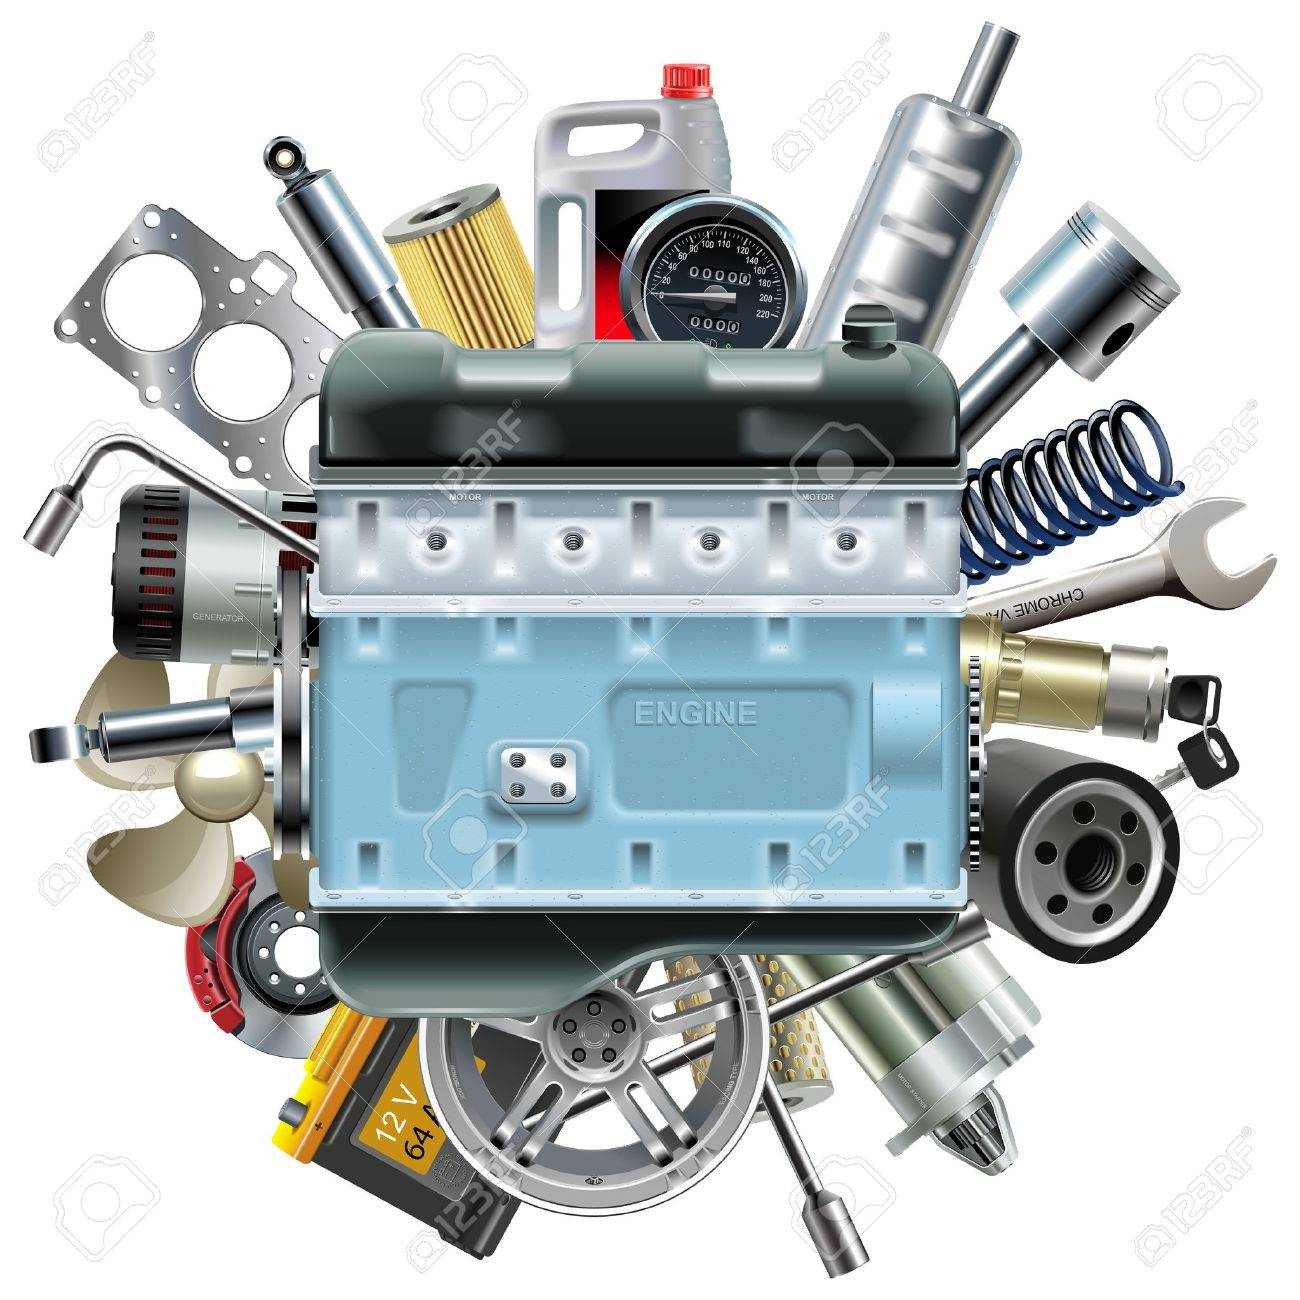 Vector Motor Engine with Car Spares isolated on white background - 47340851